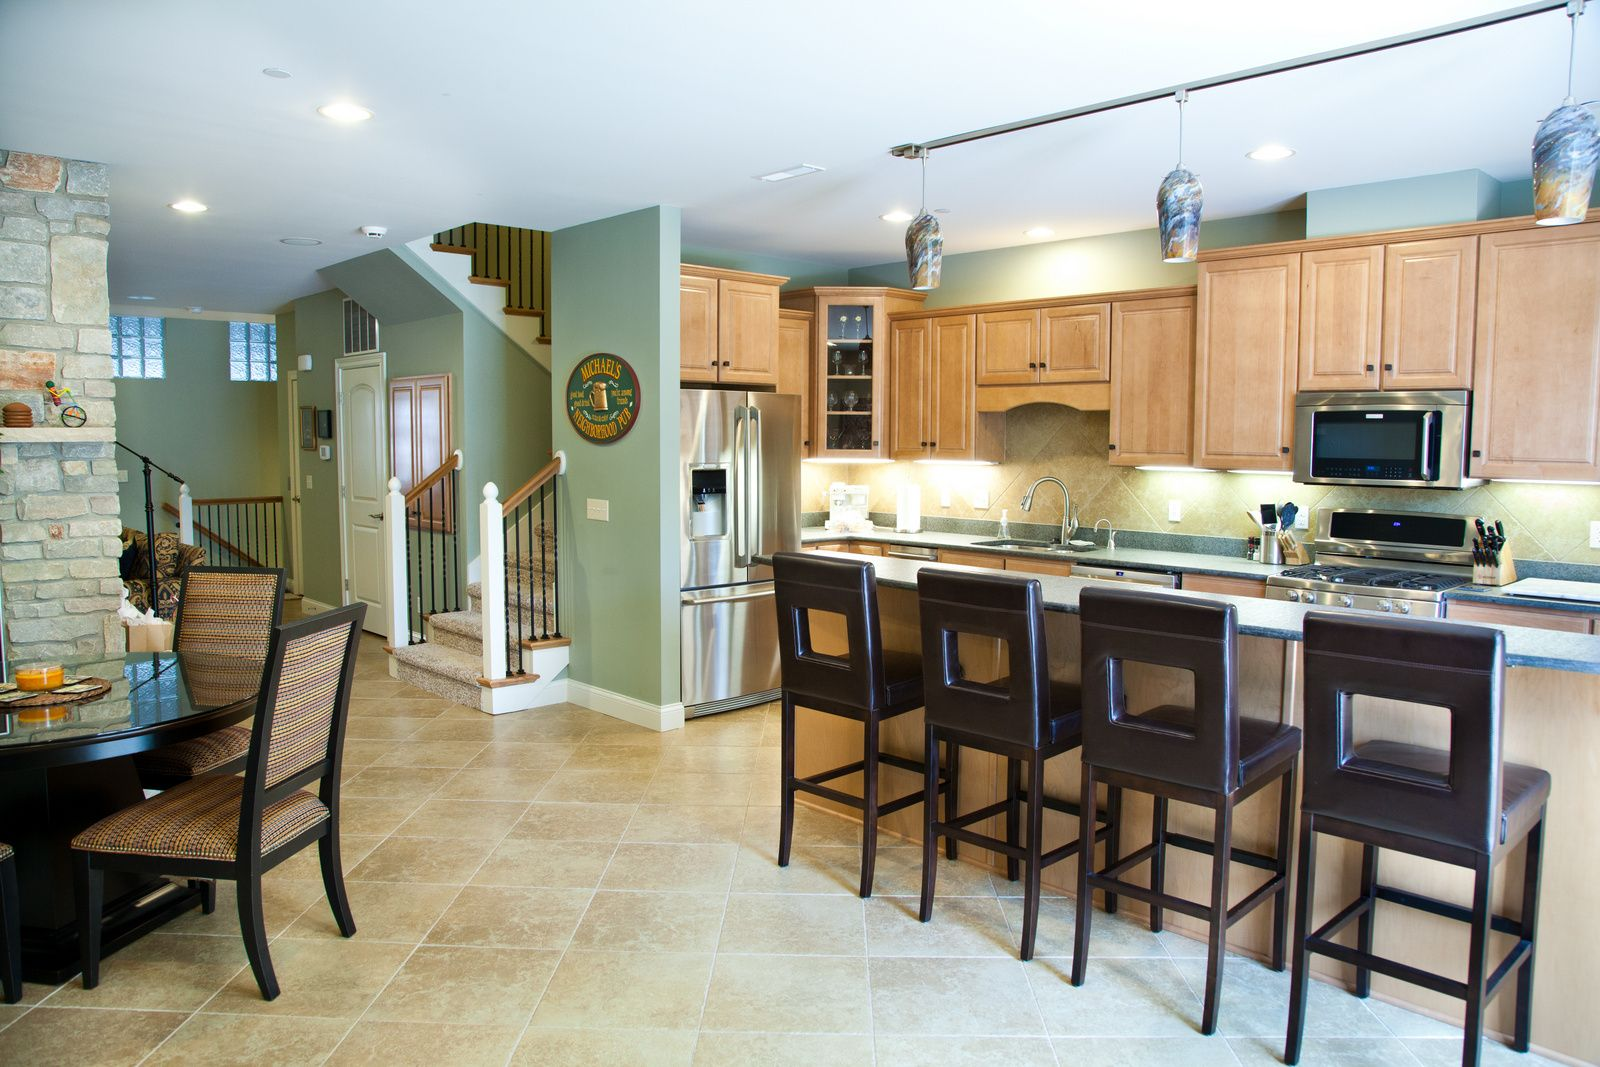 Ivy Quad Notre Dame Themed Condo Galley Kitchen With Porcelain Tile Floors Rustic Fireplace Maple Cabinet Kitchen Flooring Maple Cabinets Kitchen Remodel